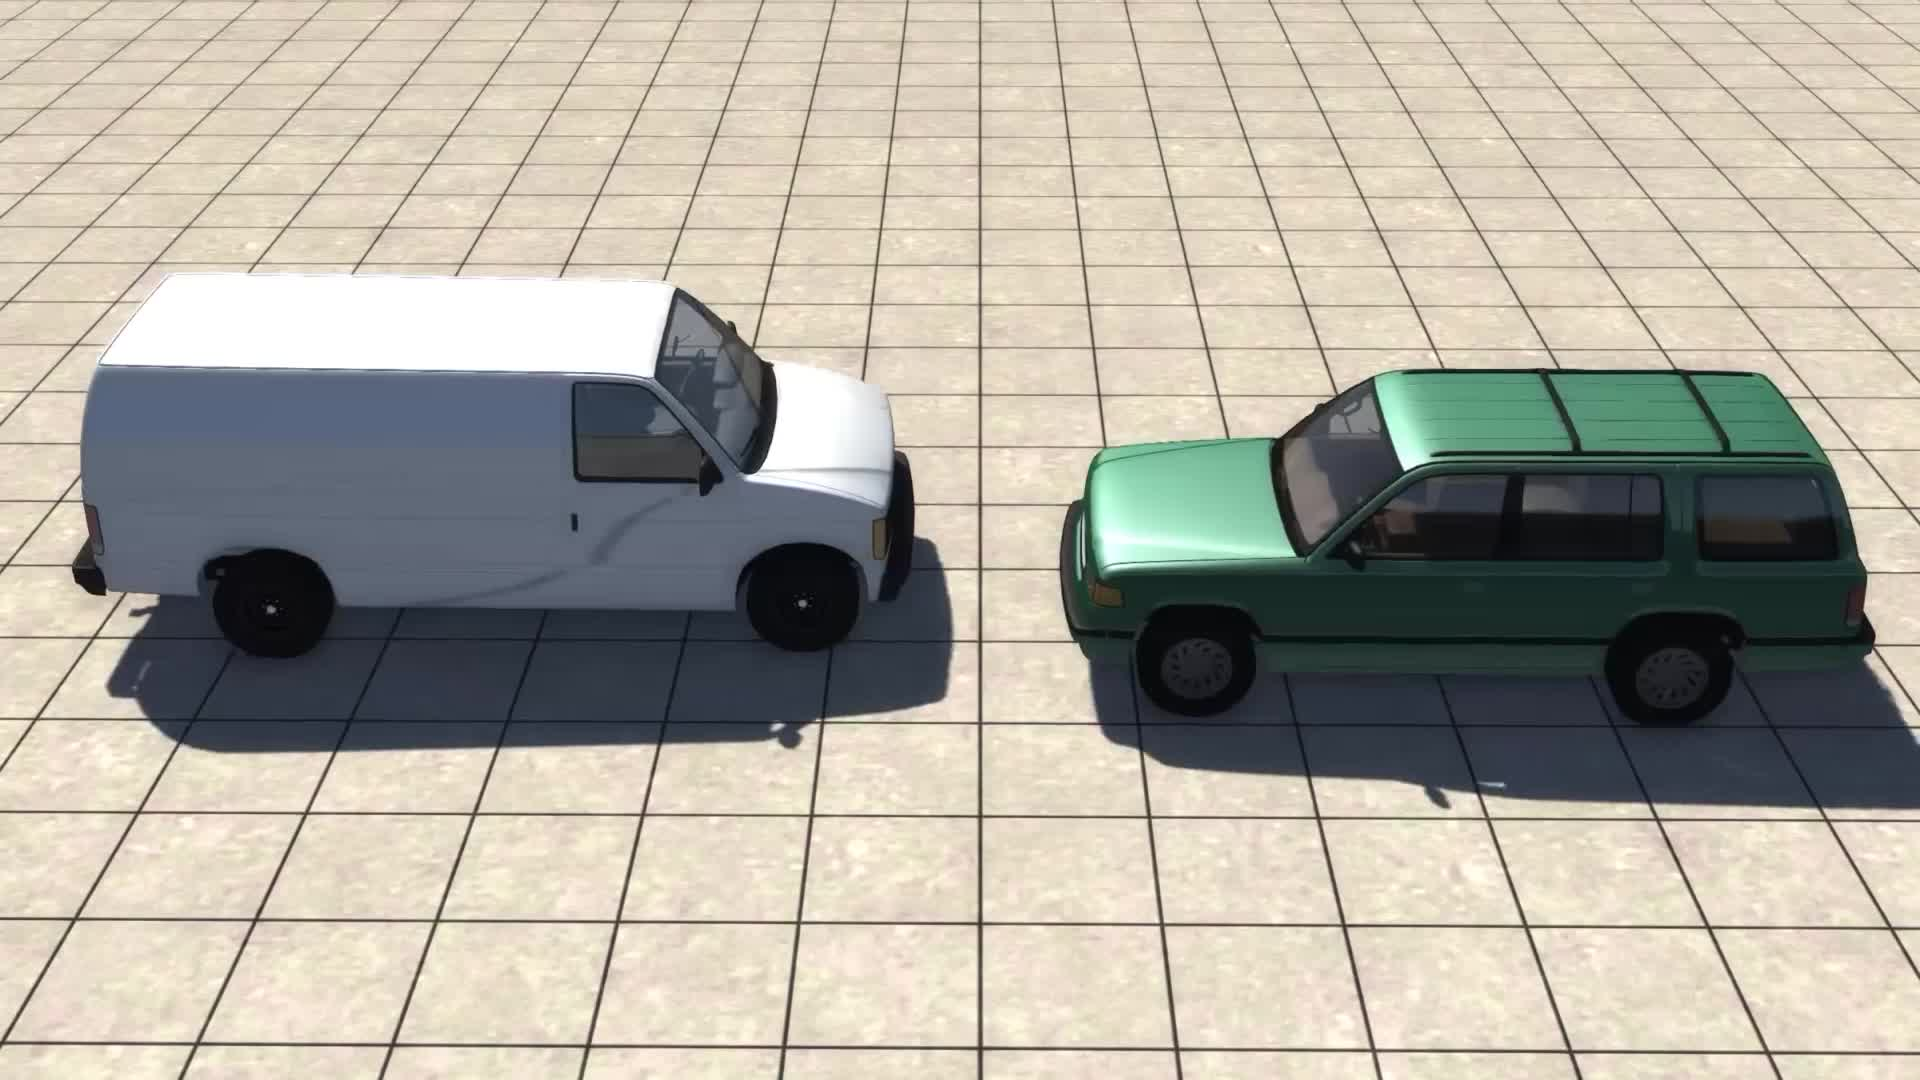 beamng, BeamNG.Drive: Steam Early Access Trailer GIFs